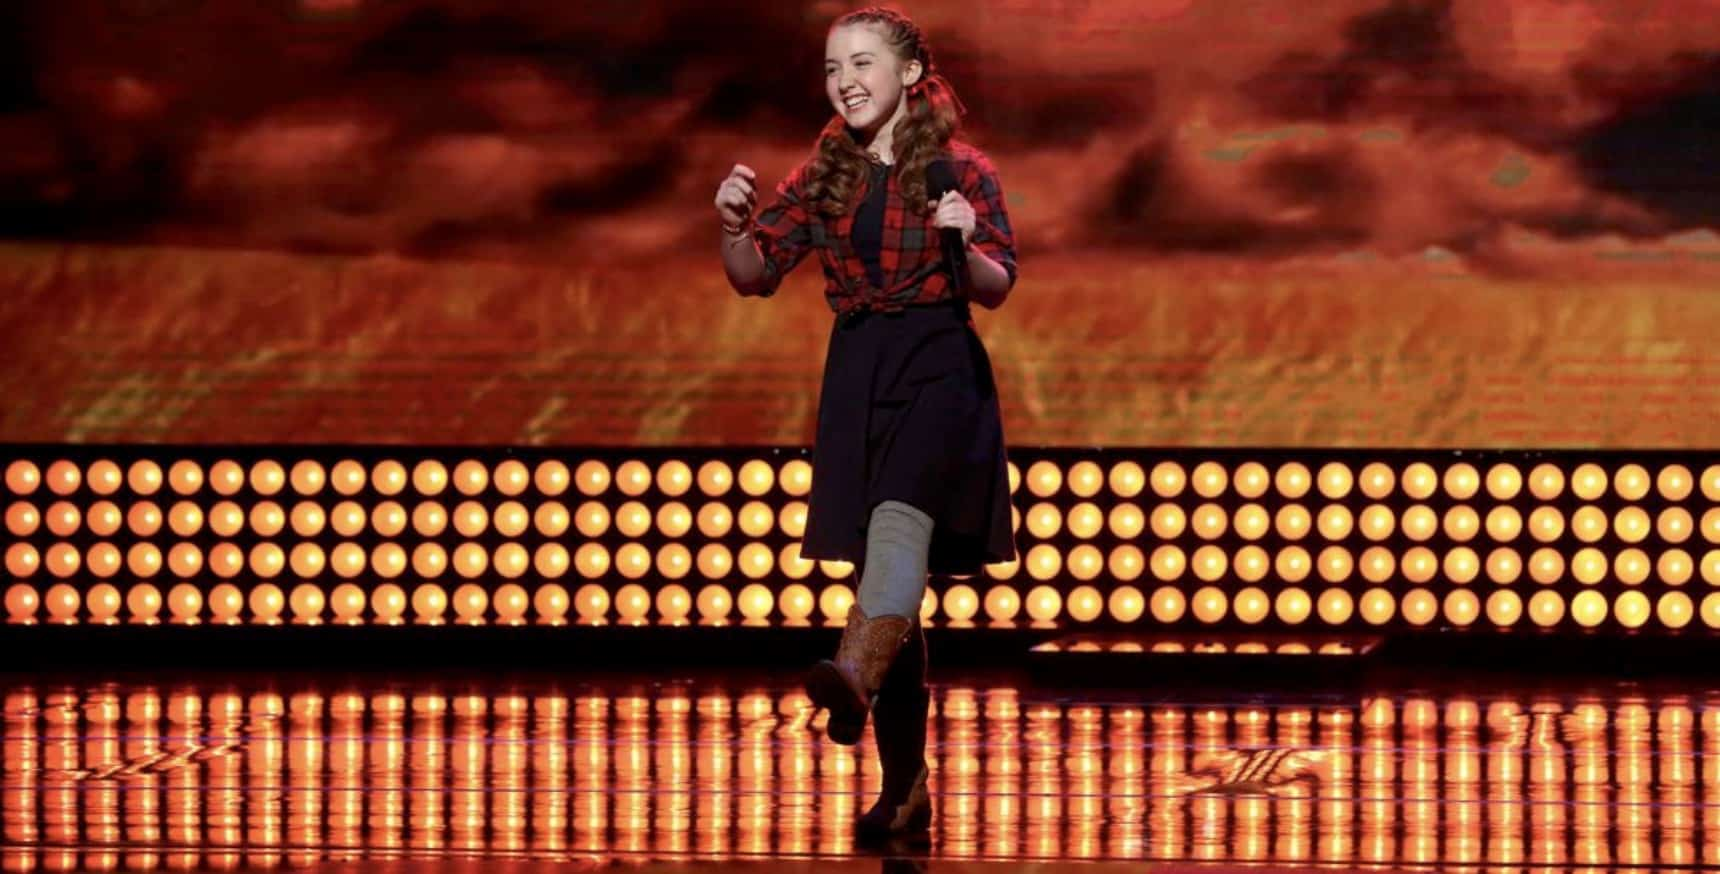 Ezrah Noelle performing a yodelling classic on Little Big Shots with Steve Harvey